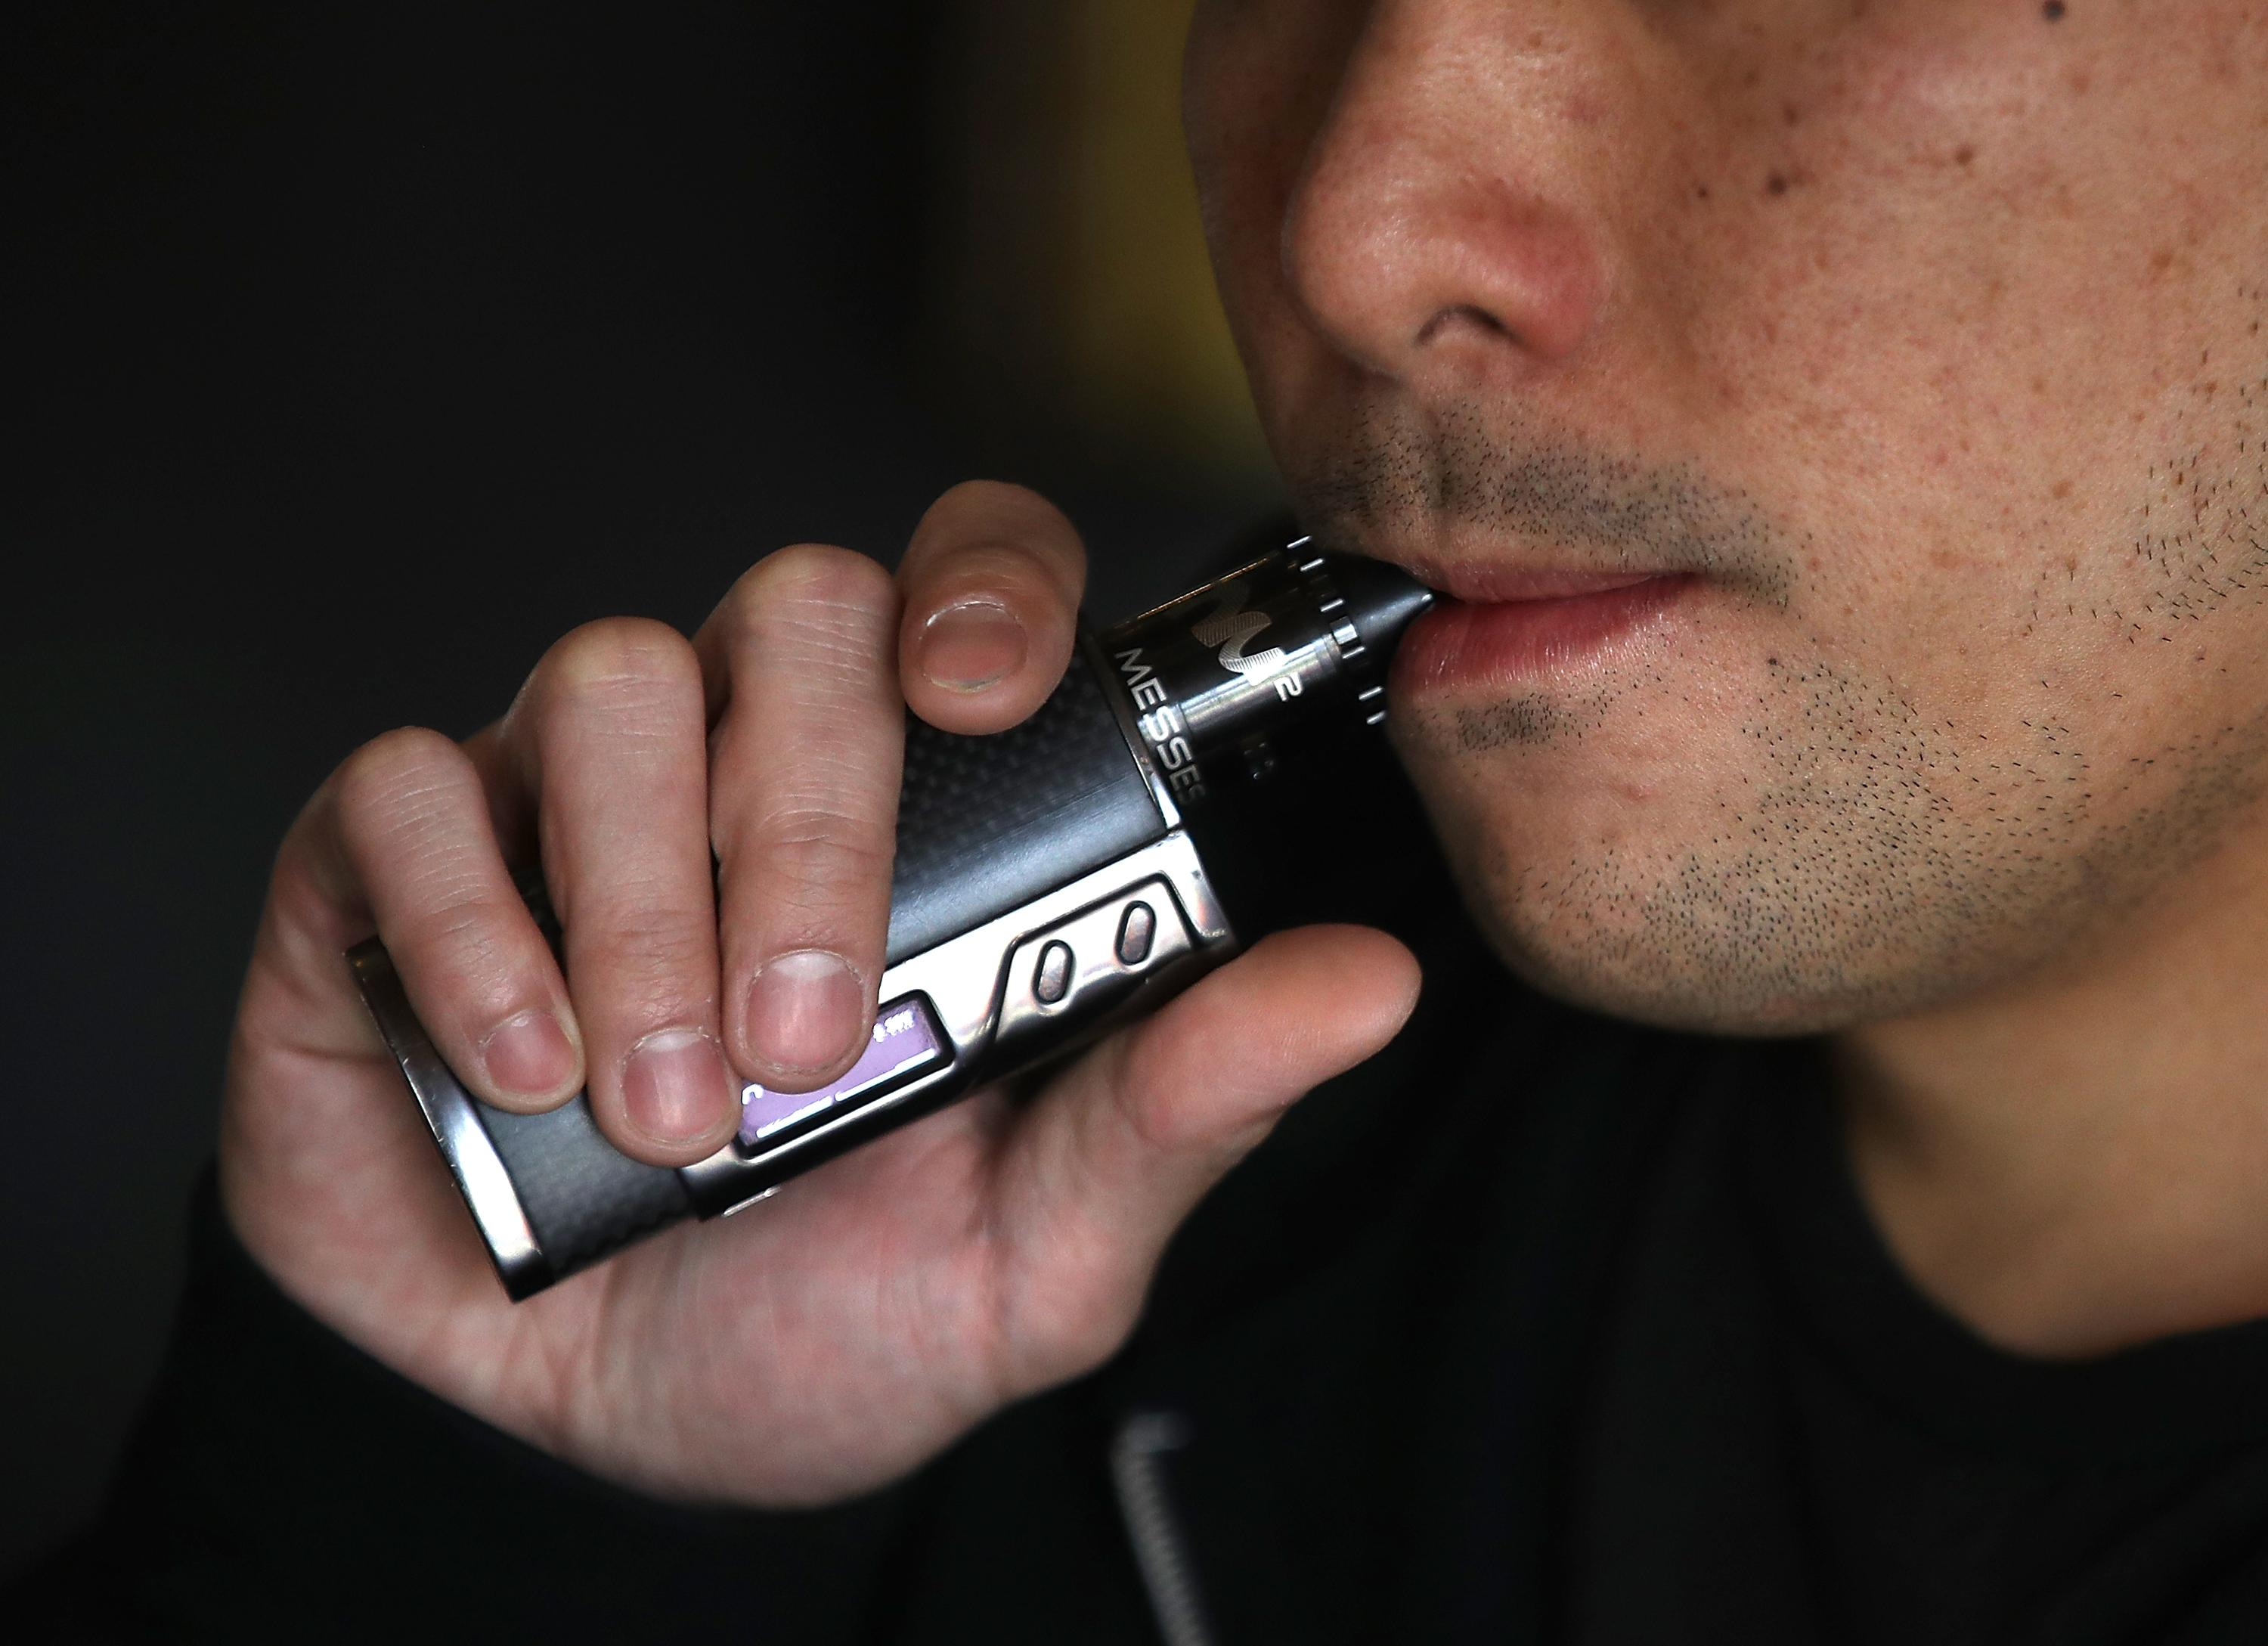 Exploding Vape Pen Killed Florida Man, Autopsy Report Says